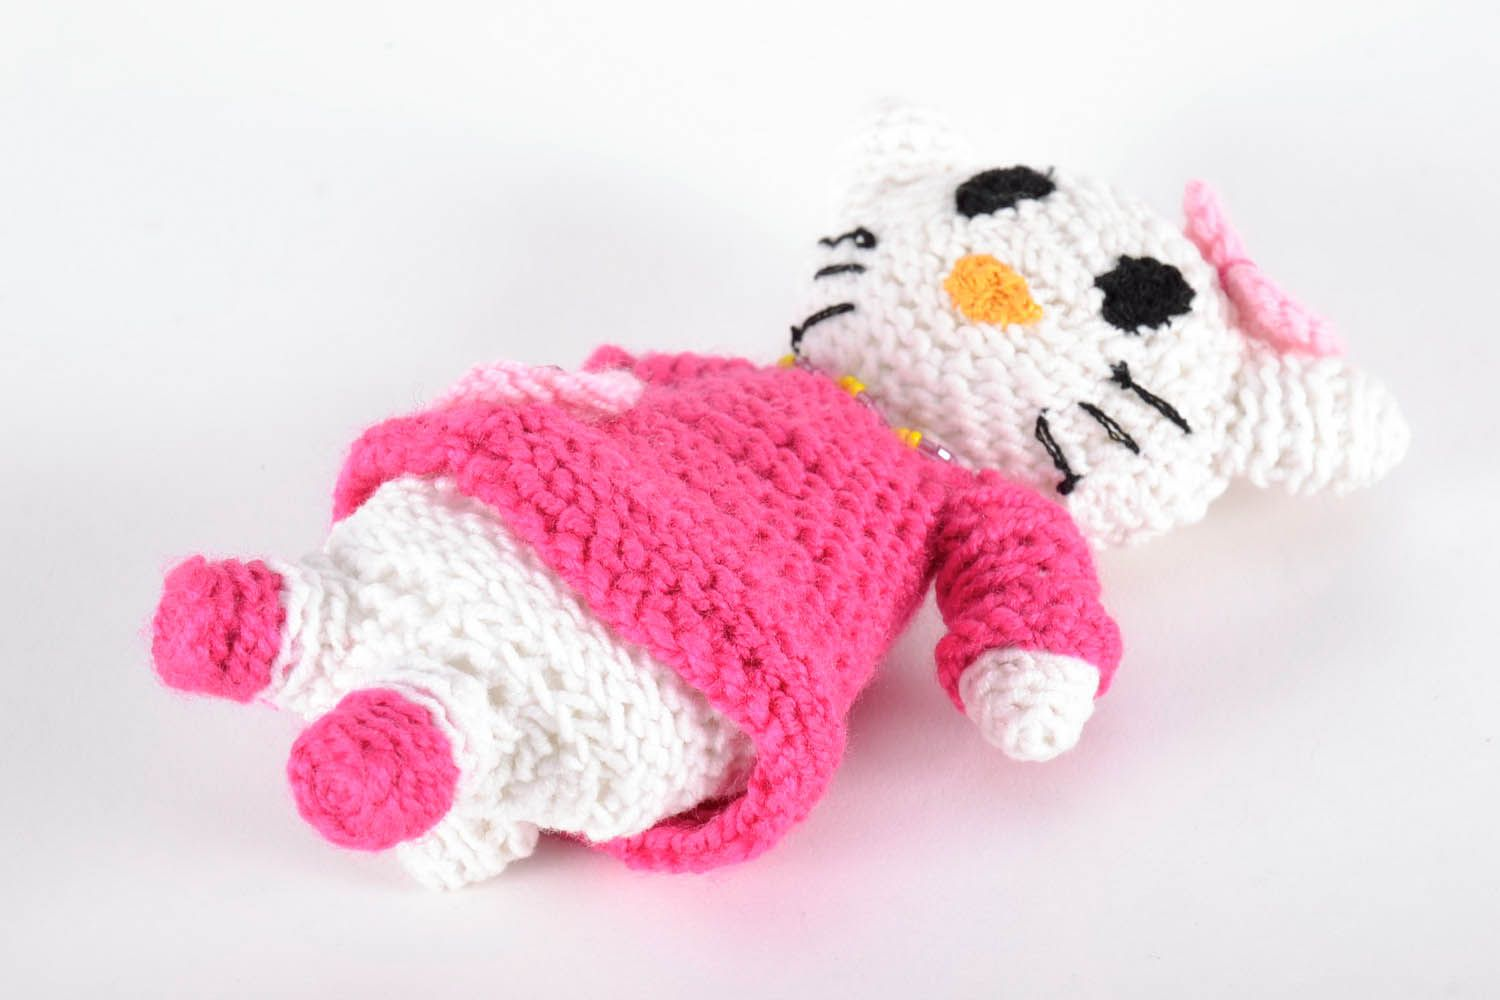 Toy crocheted around with wool threads photo 2